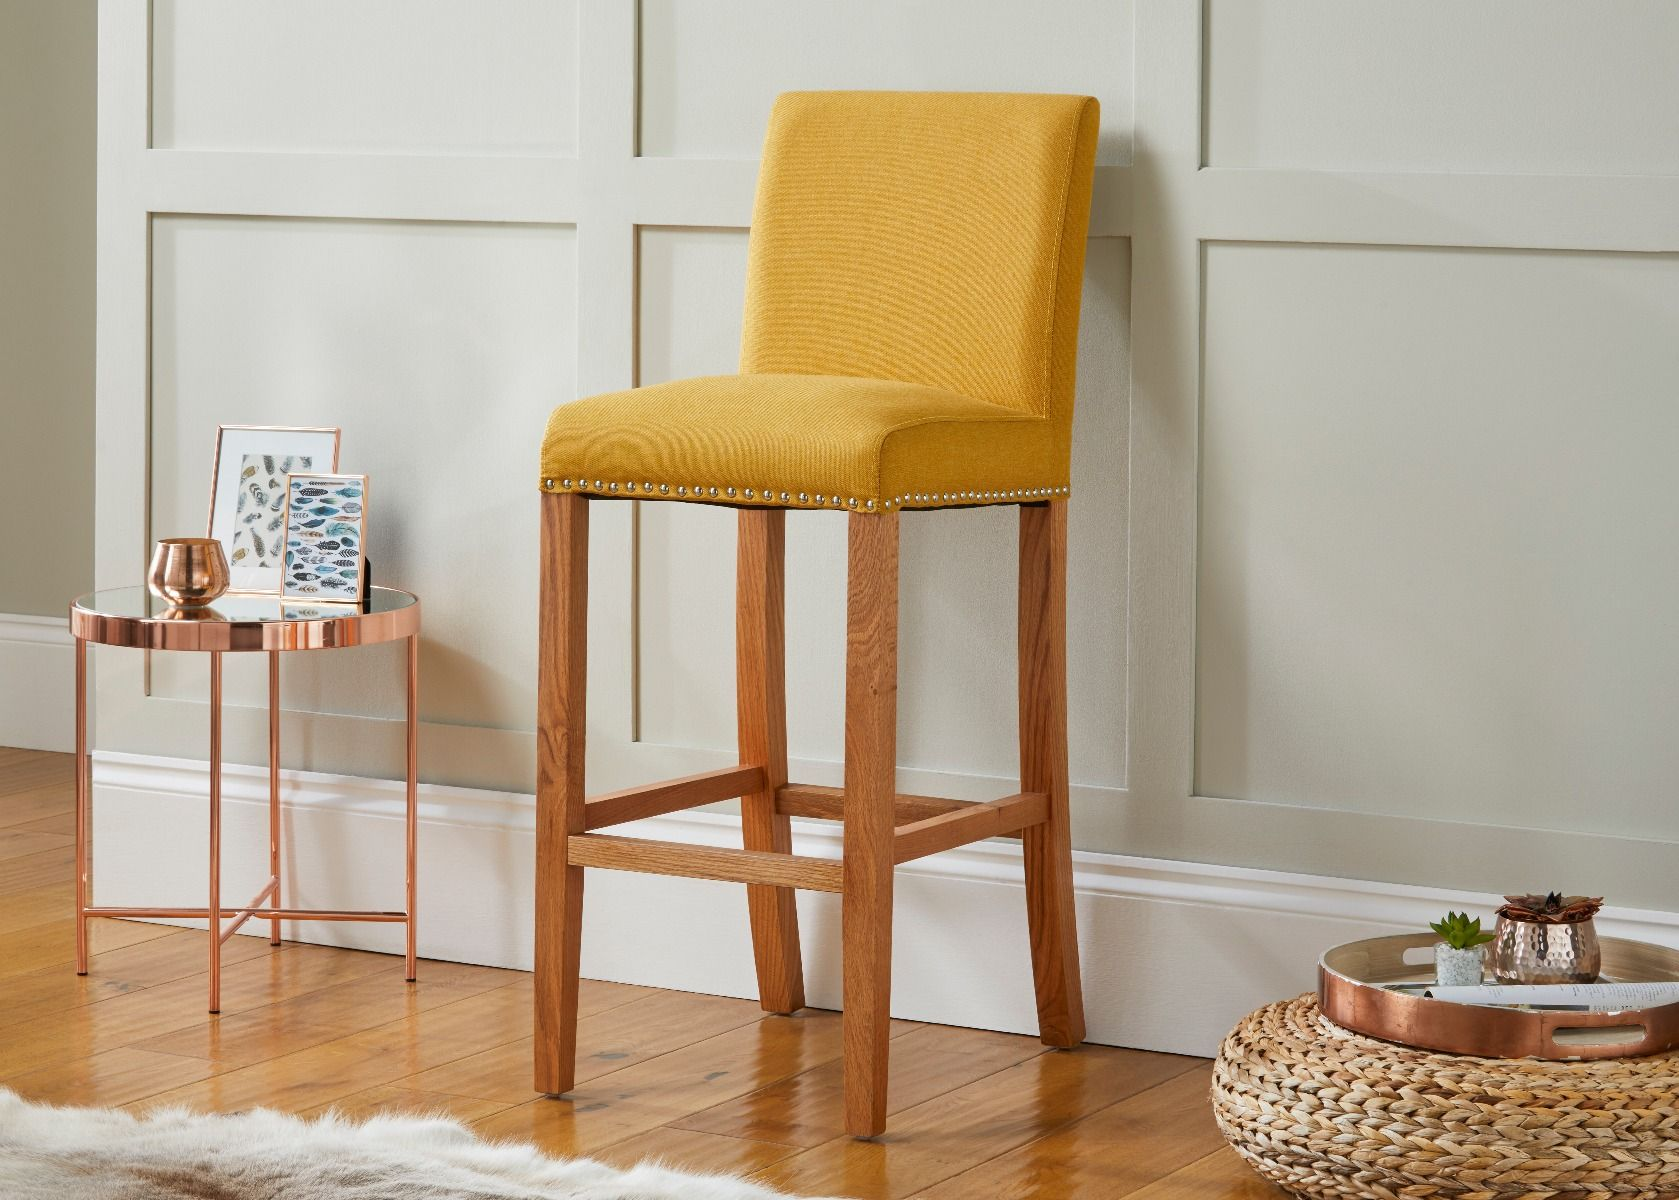 Buckingham Mustard Yellow Linen Oak Kitchen Stool